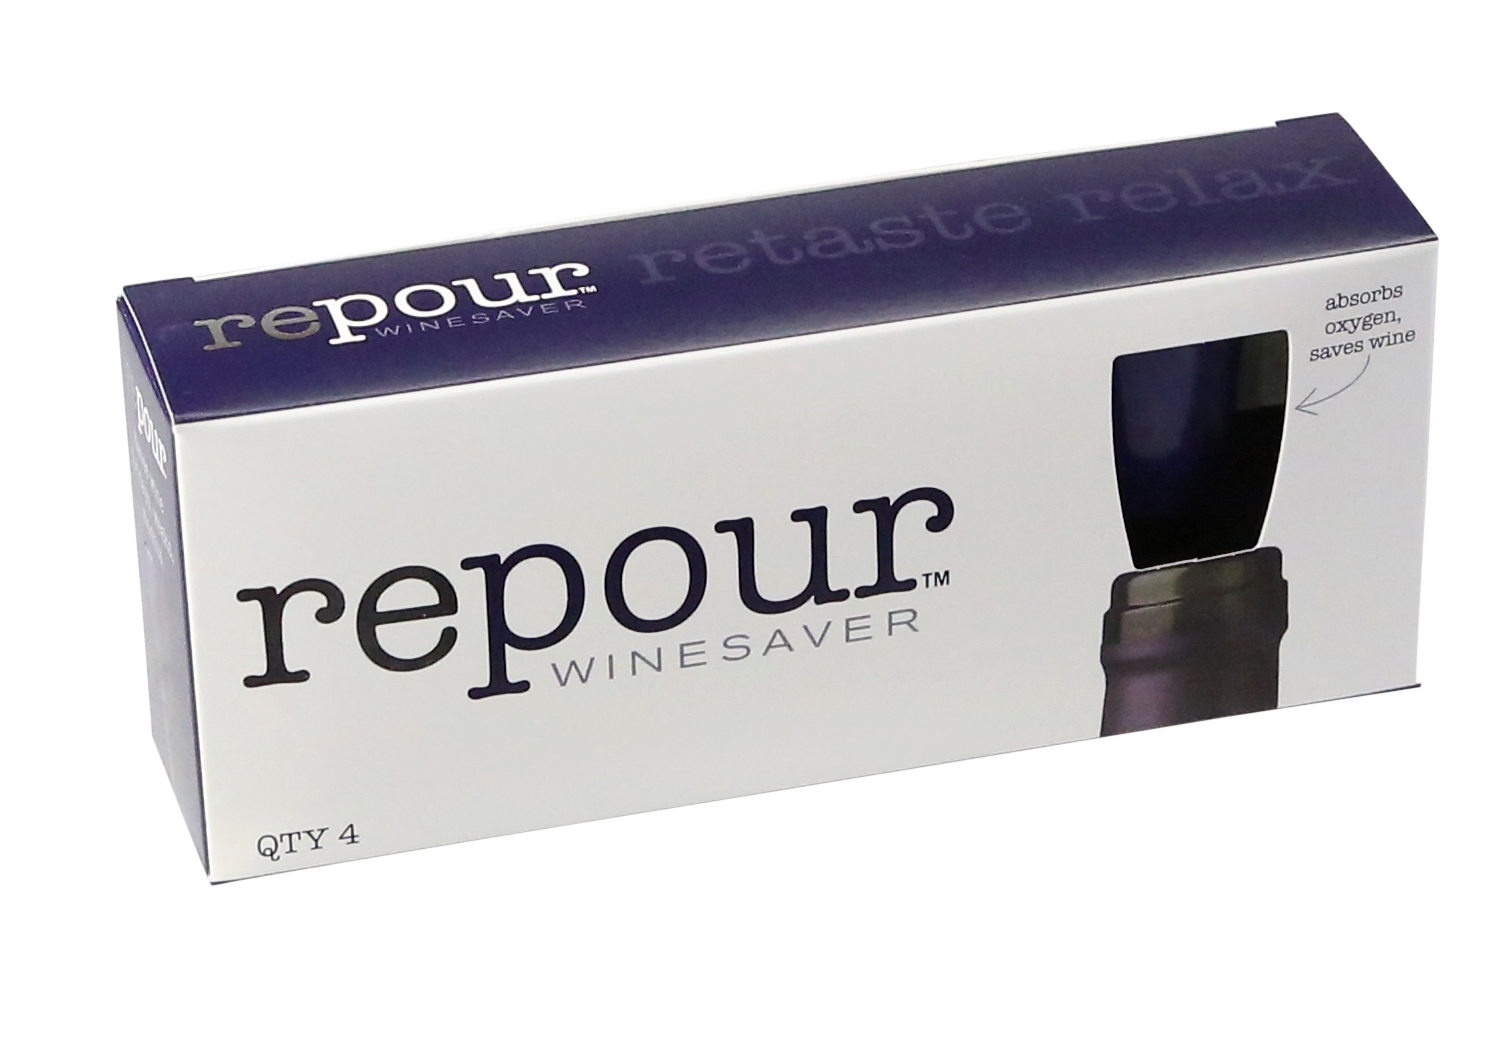 Recommendation: - The Repour wine saver